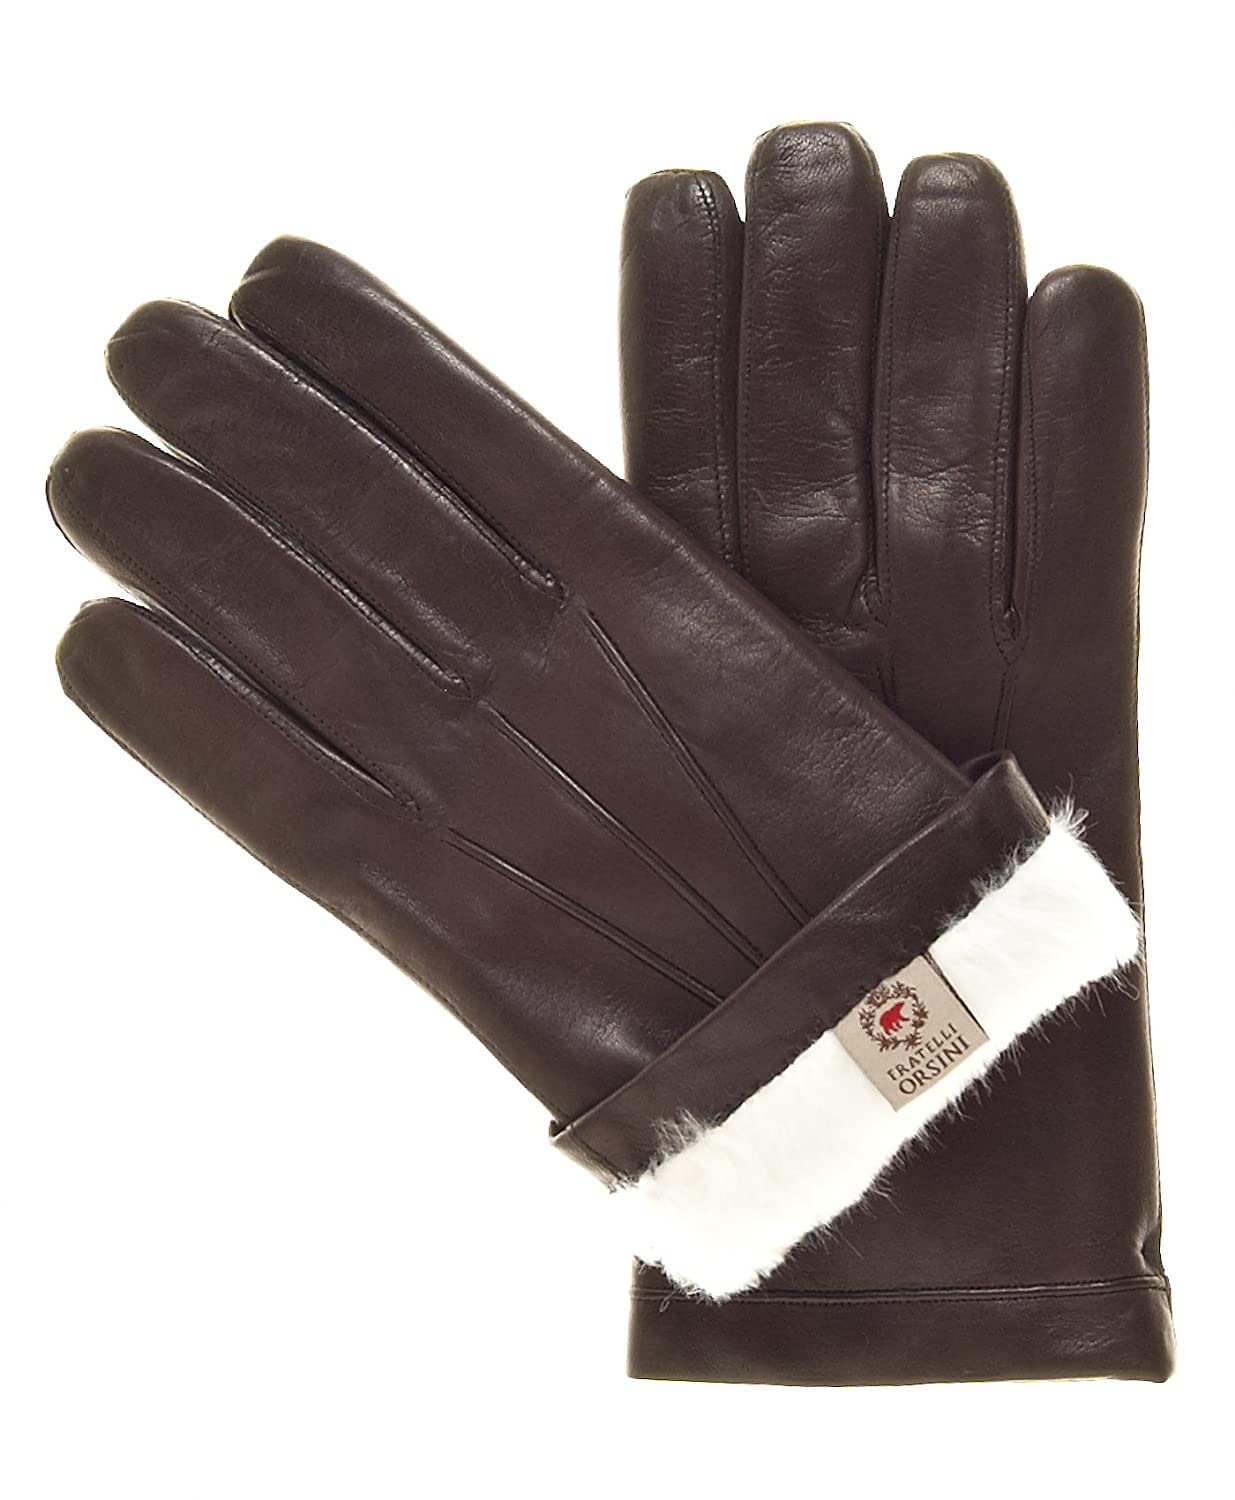 Mens leather gloves rabbit fur lined - Best Fratelli Orsini Men S Italian Rabbit Fur Lined Leather Gloves